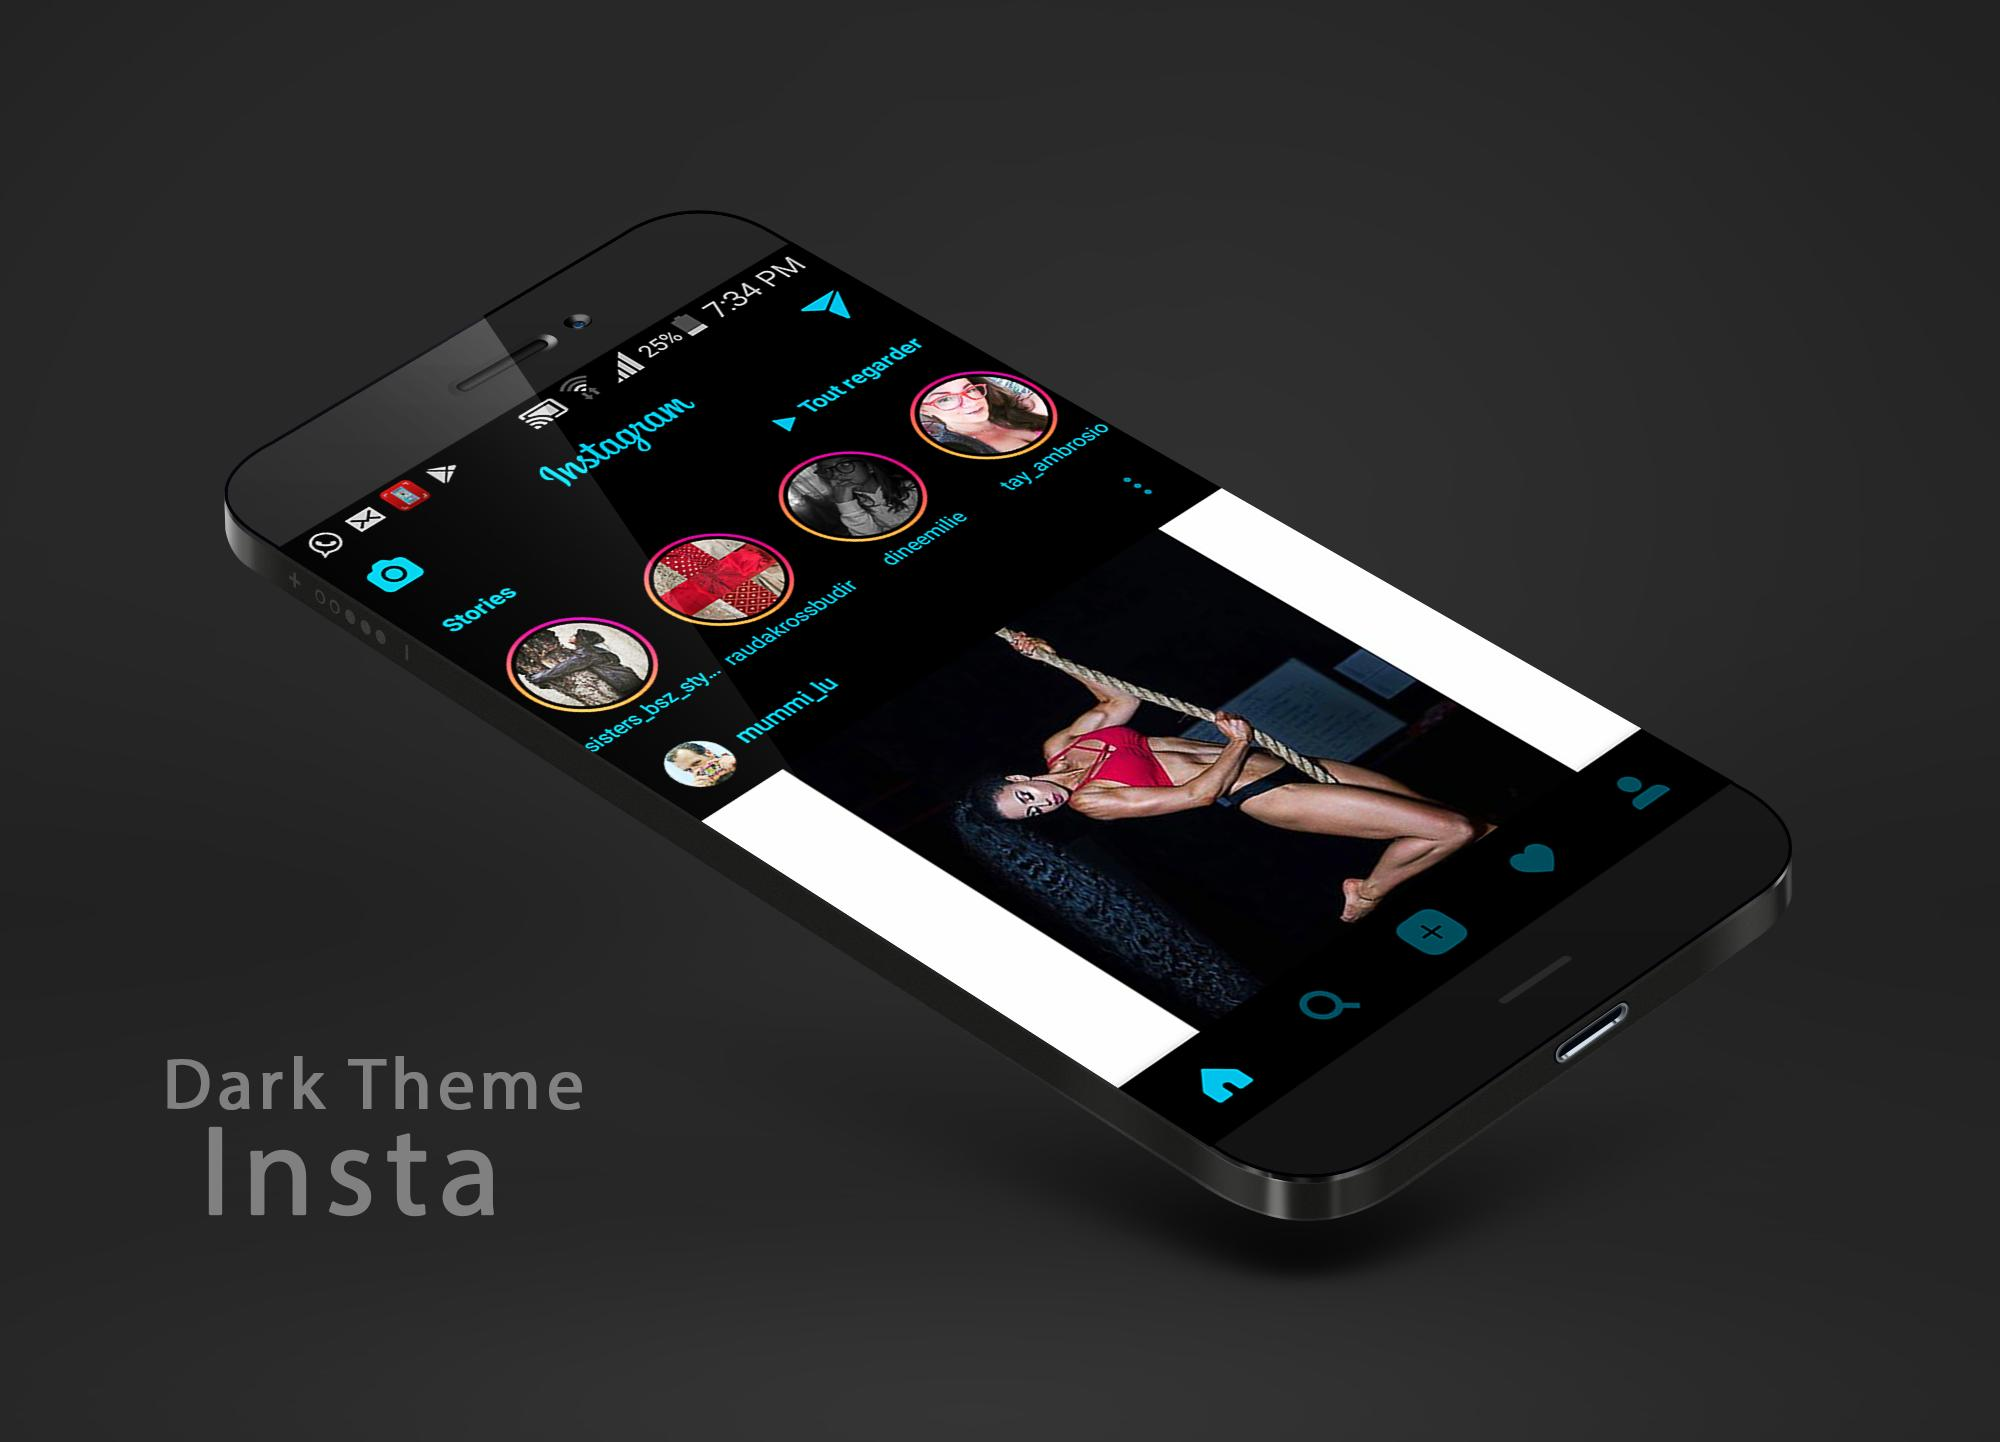 Dark theme for instagram for Android - APK Download